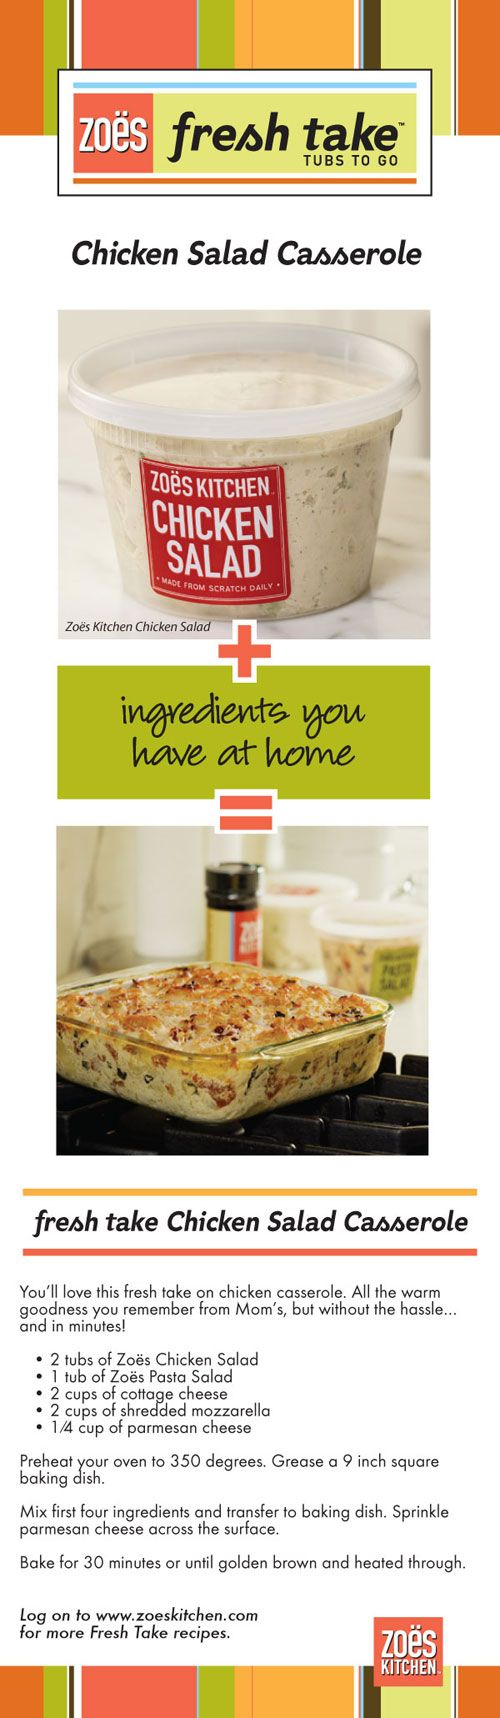 15 best images about Zoes kitchen on Pinterest  Discover